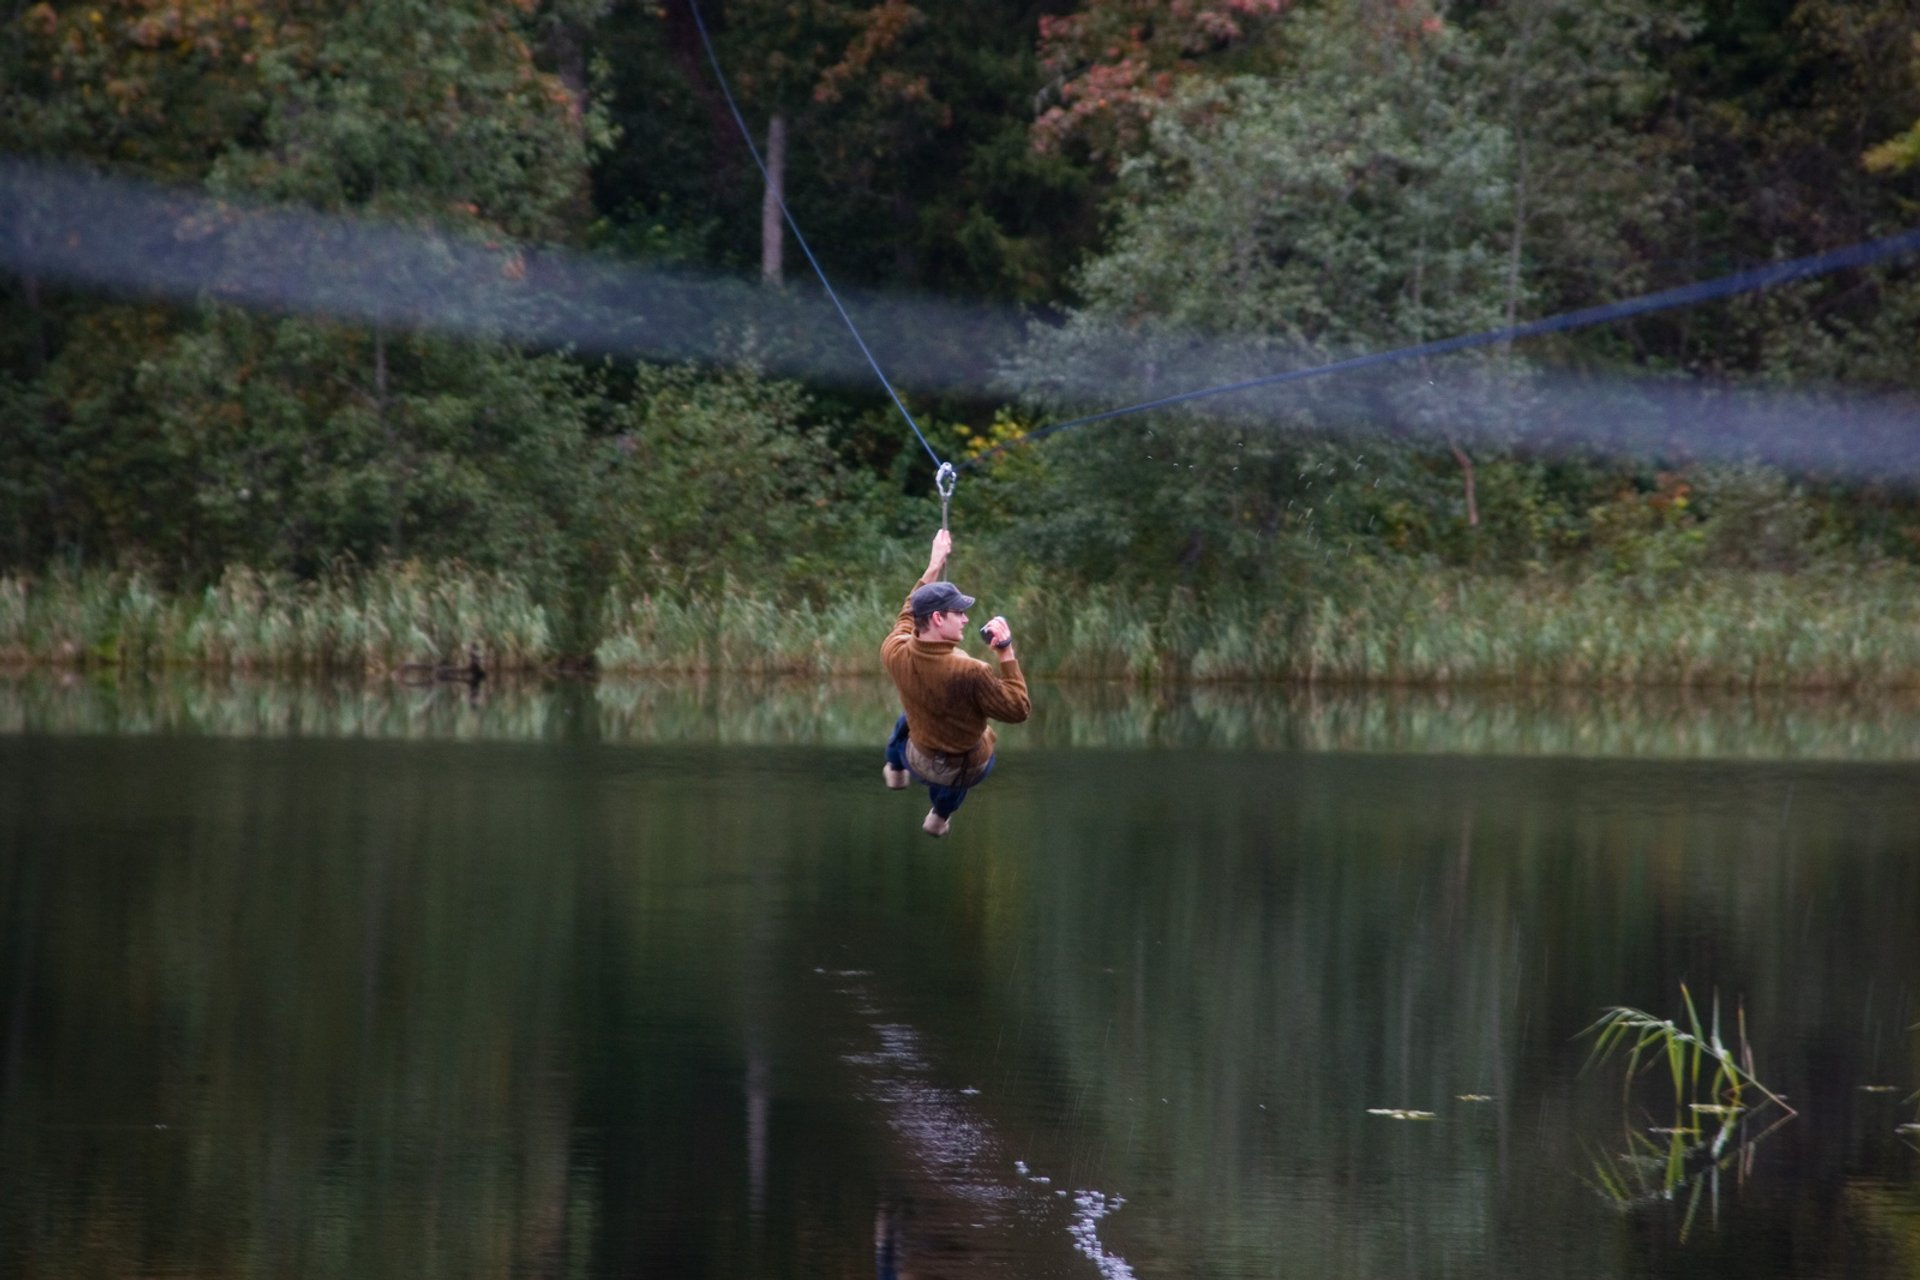 Zip-Line in Kiviõli in Estonia - Best Season 2020